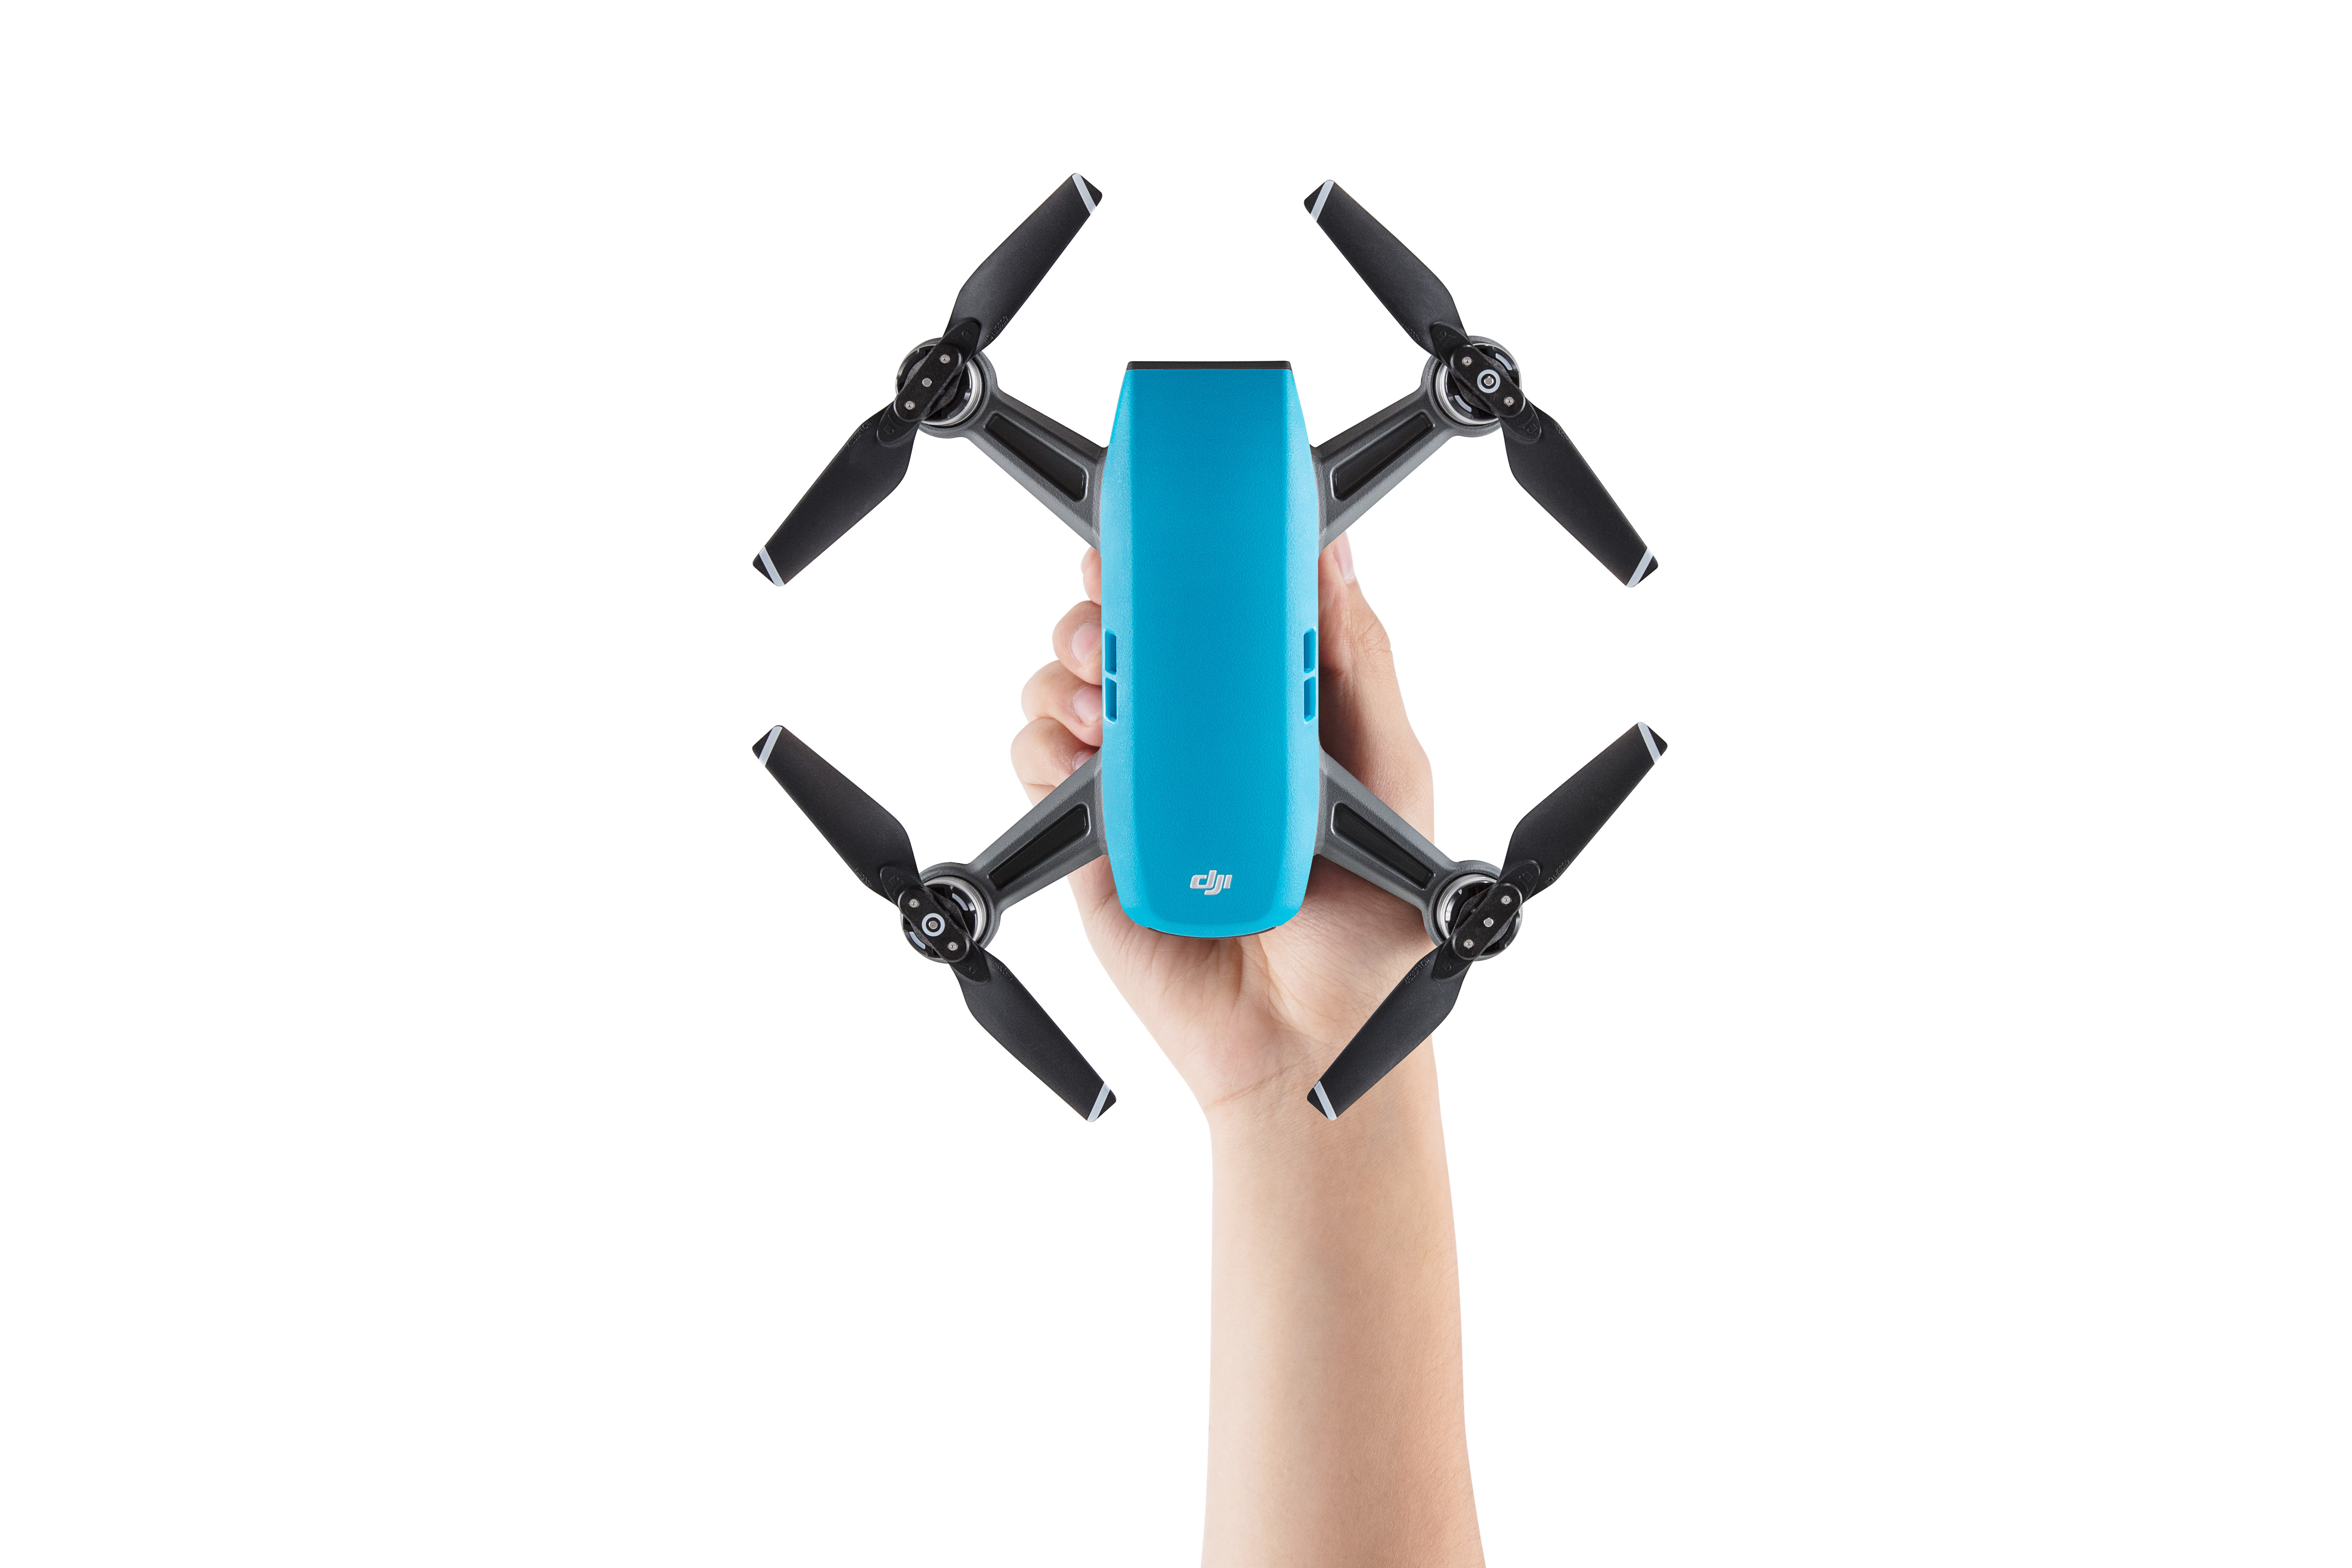 smartphone controlled drone with camera with Dji Selfie Photos Drone Spark Social Media on Dji Selfie Photos Drone Spark Social Media besides Anura Pocket Drone further Paper Airplanes Faa Approved For Takeoff besides China E2 80 99s Yi Technology Presents First Full Carbon Fiber Drone furthermore Xiaomi Backed Yi Technology To Showcase New Action Camera Drone At Ces 2017 1643189.